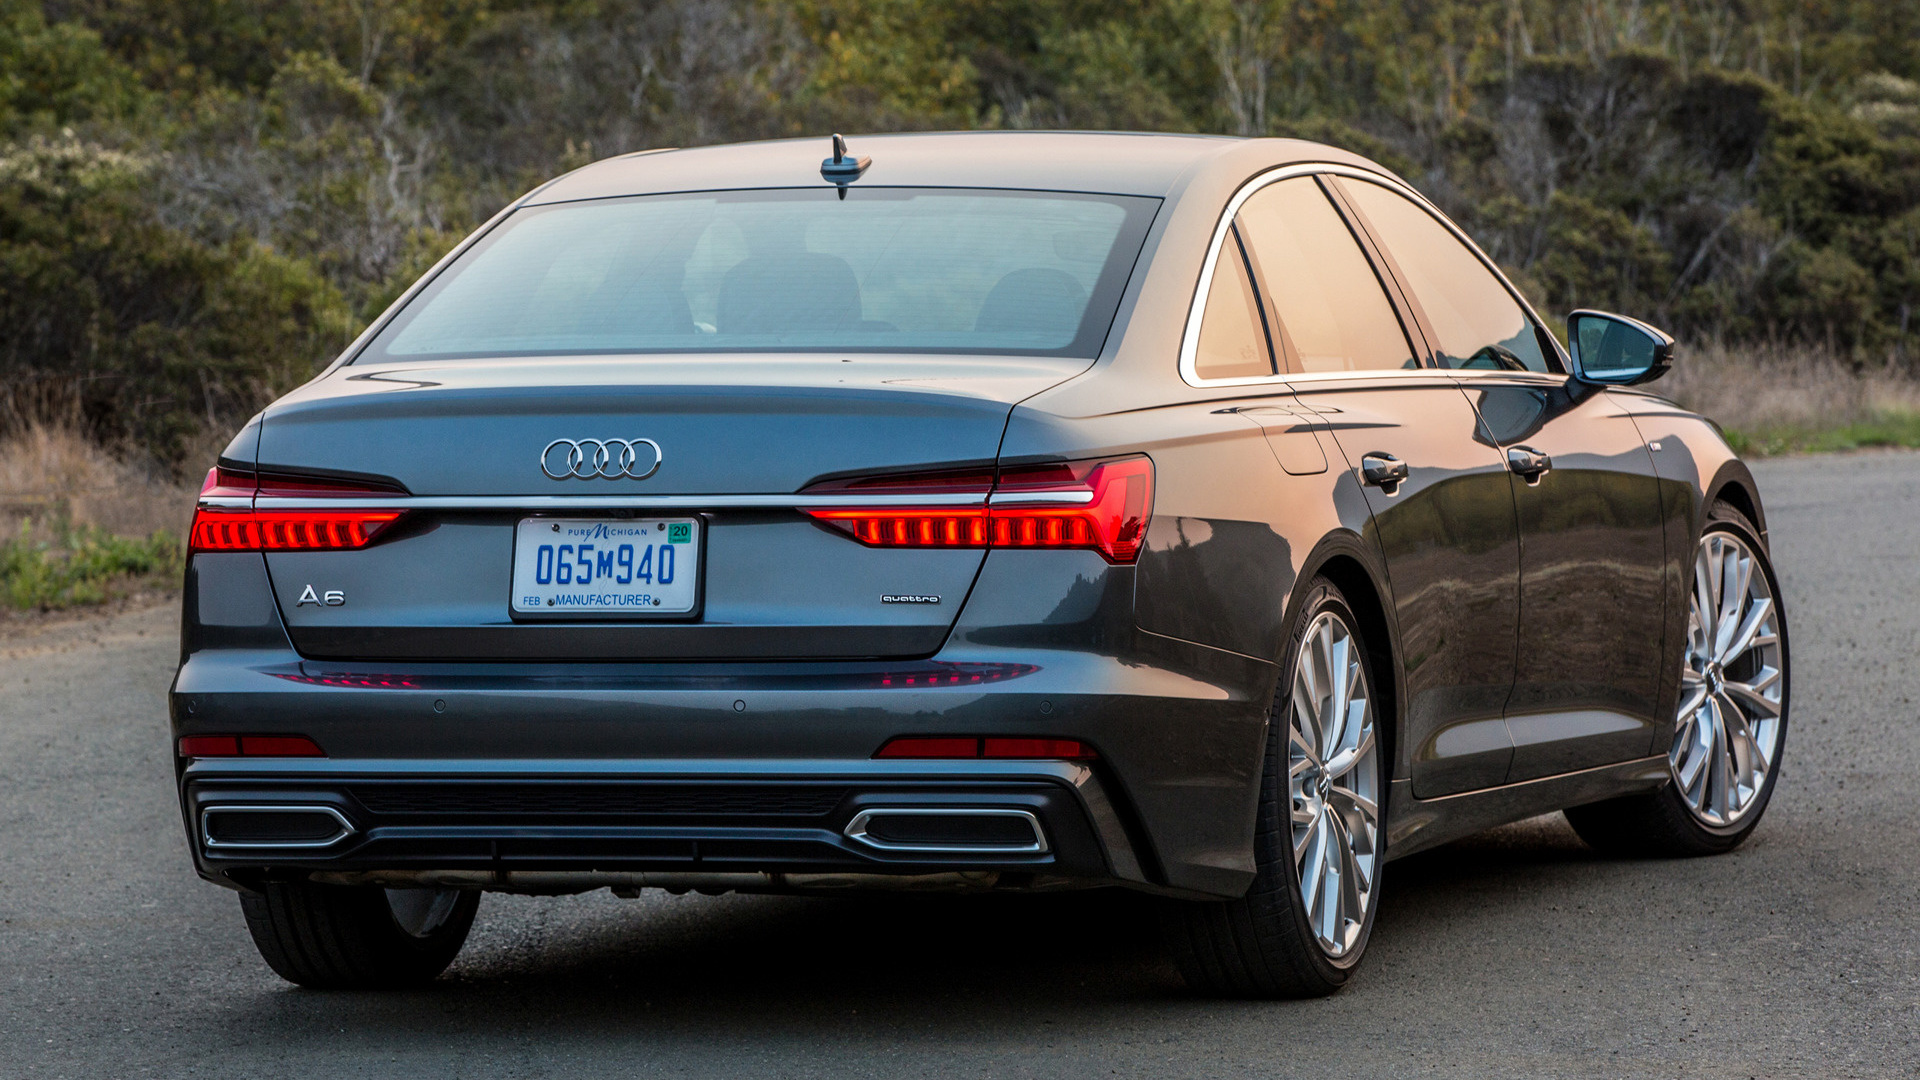 2019 Audi A6 Sedan S line (US) - Wallpapers and HD Images ...